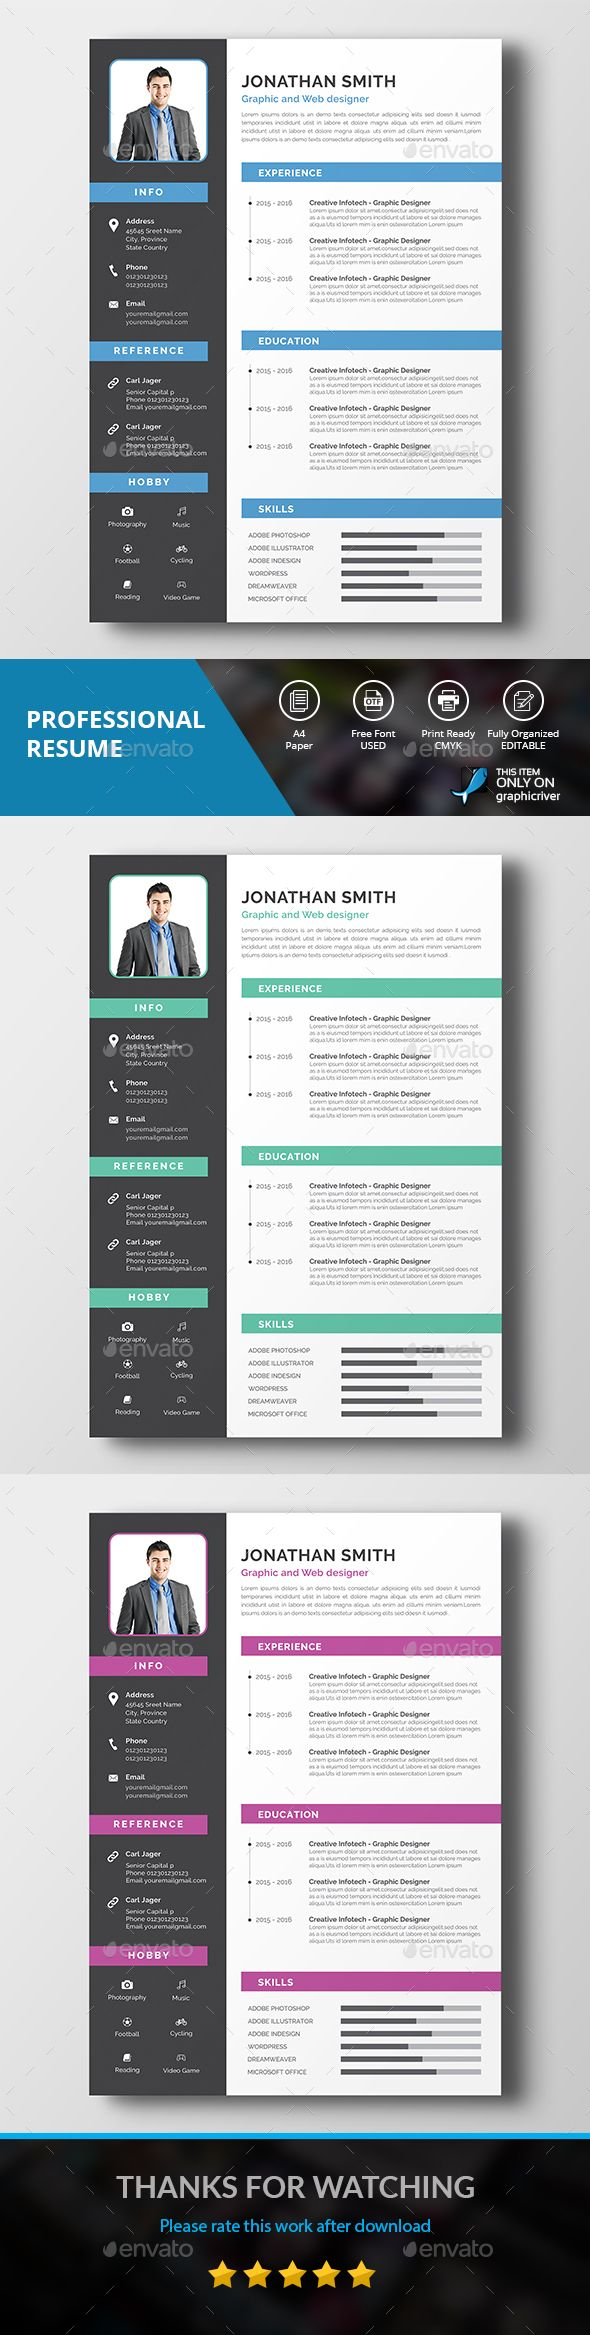 Best 25 Resume Design Ideas On Pinterest Resume Ideas Resume